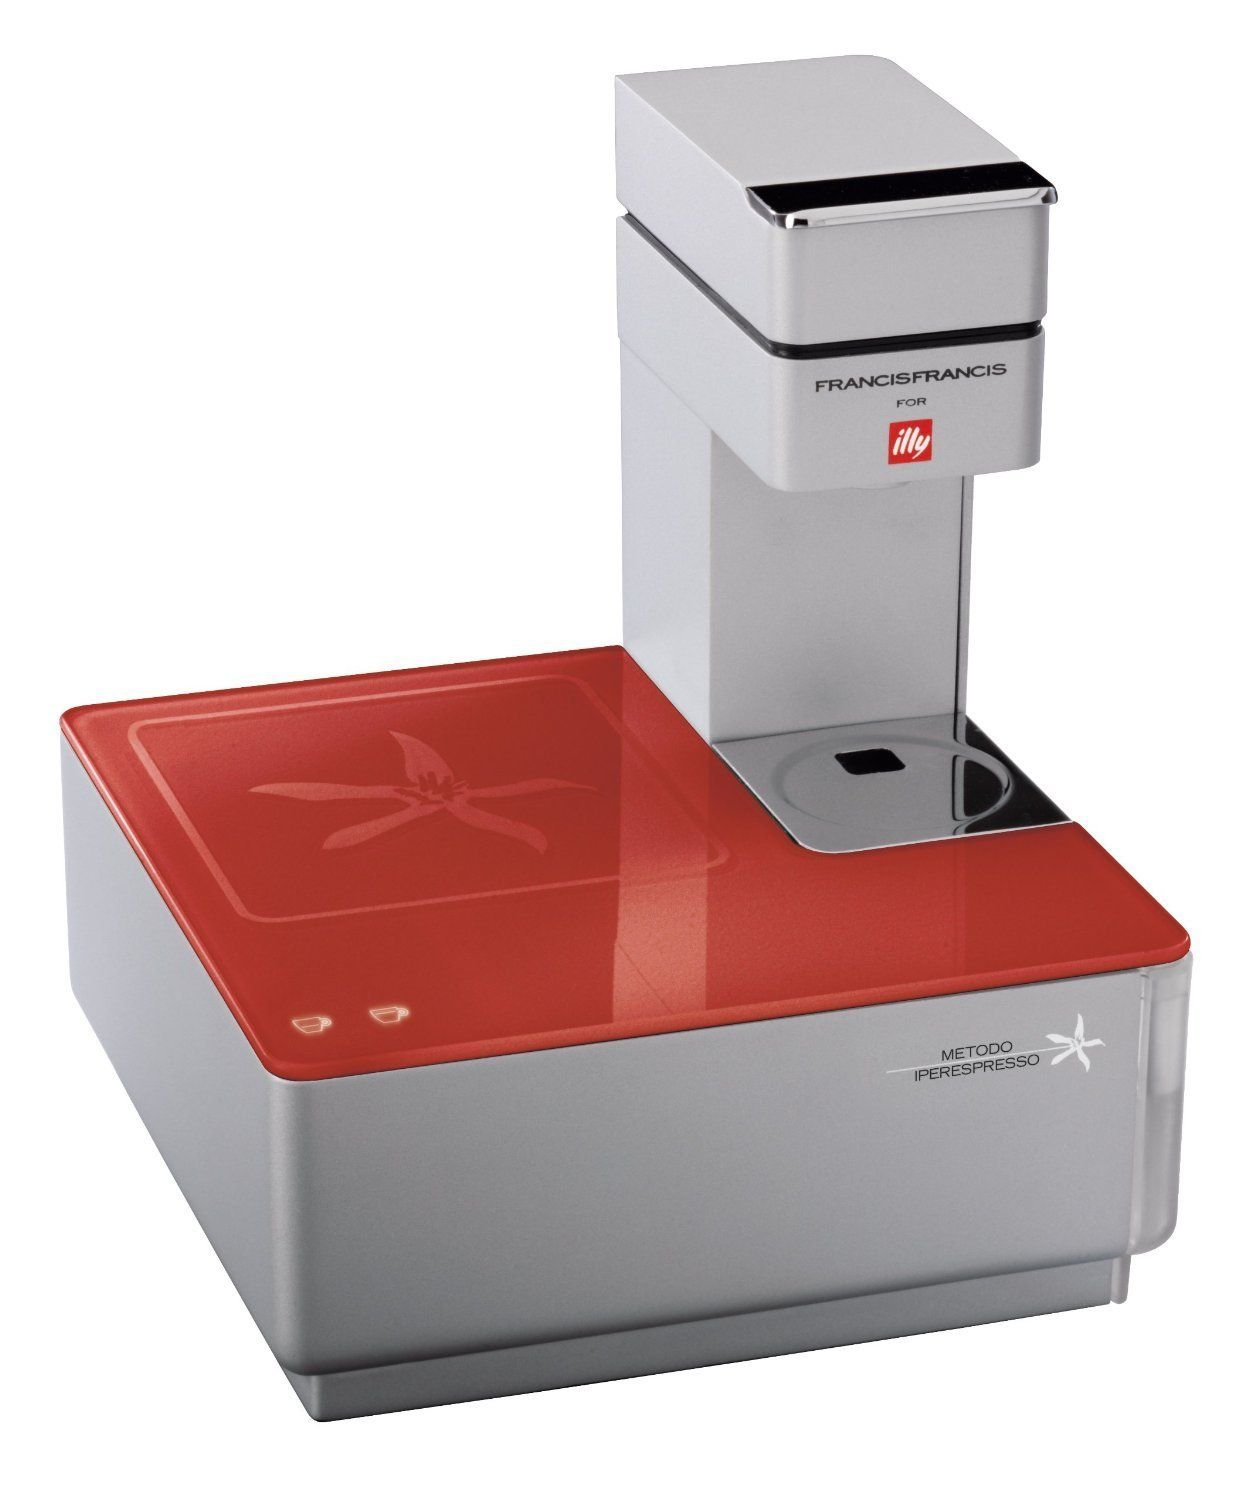 Francis Francis Illy IperEspresso Y1.1 Coffee Machine, Red | Home ...